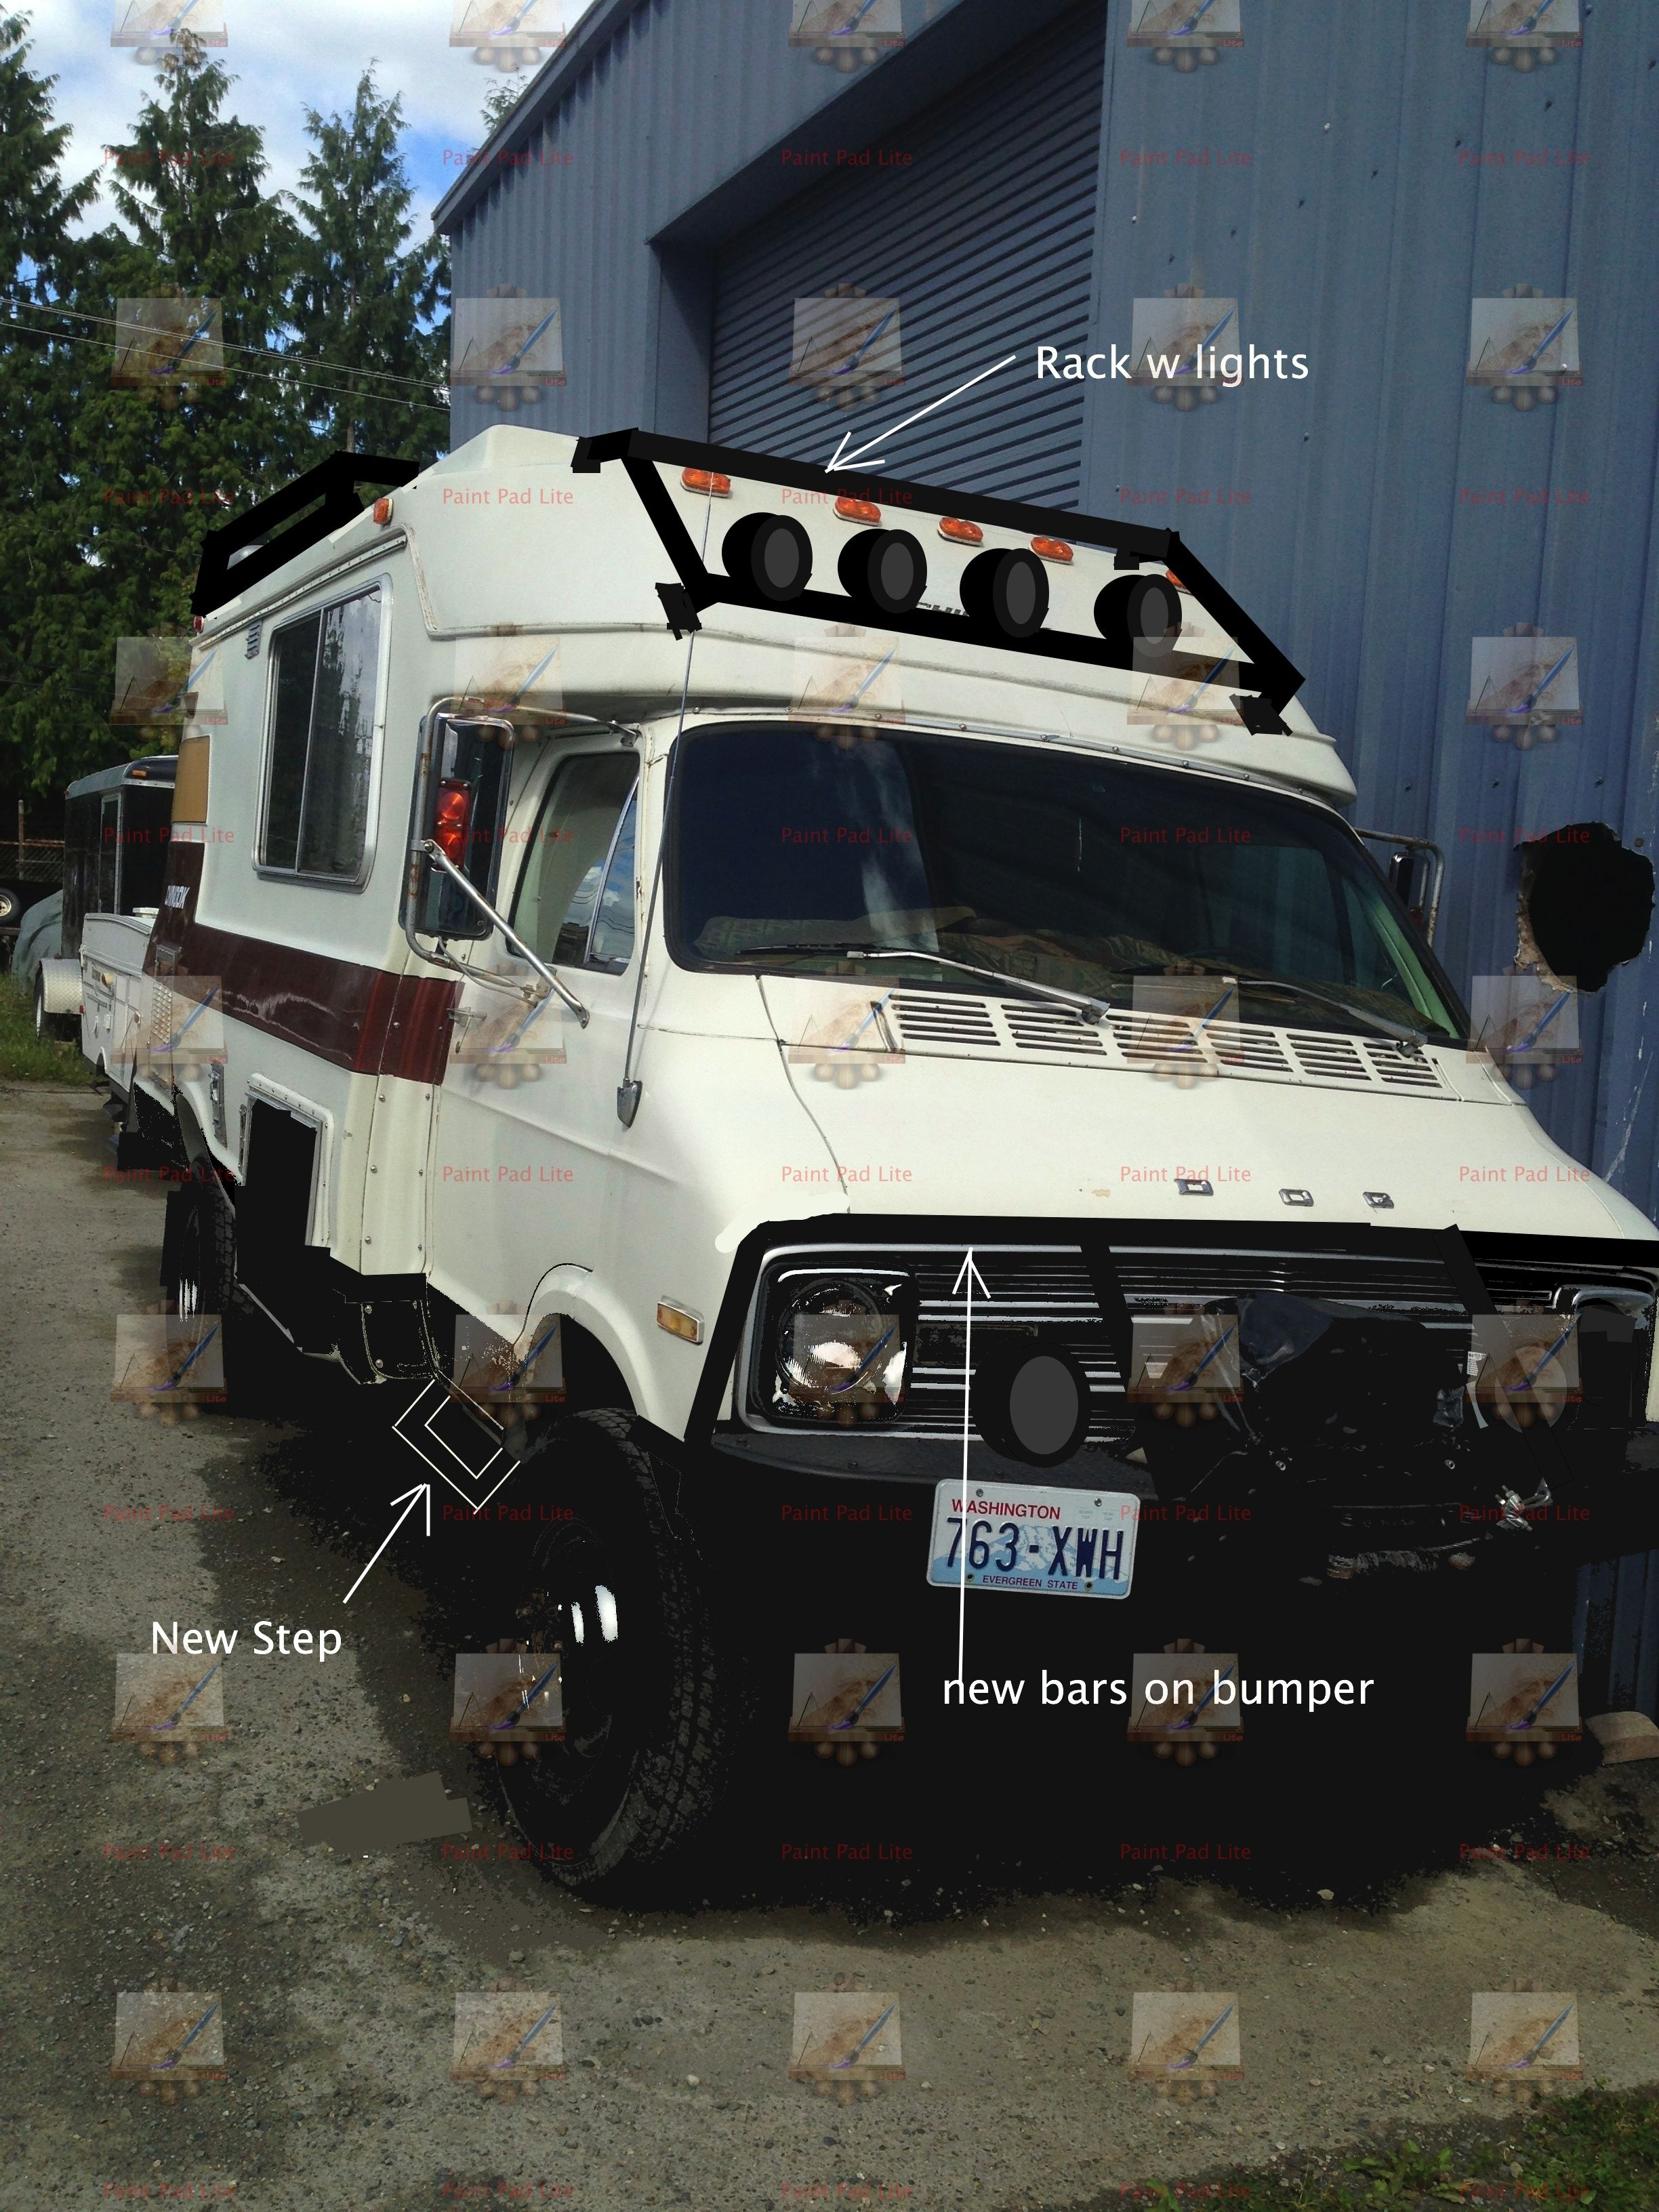 1977 chinook | 4x4 rv | Recreational vehicles, 4x4 van, Van camping